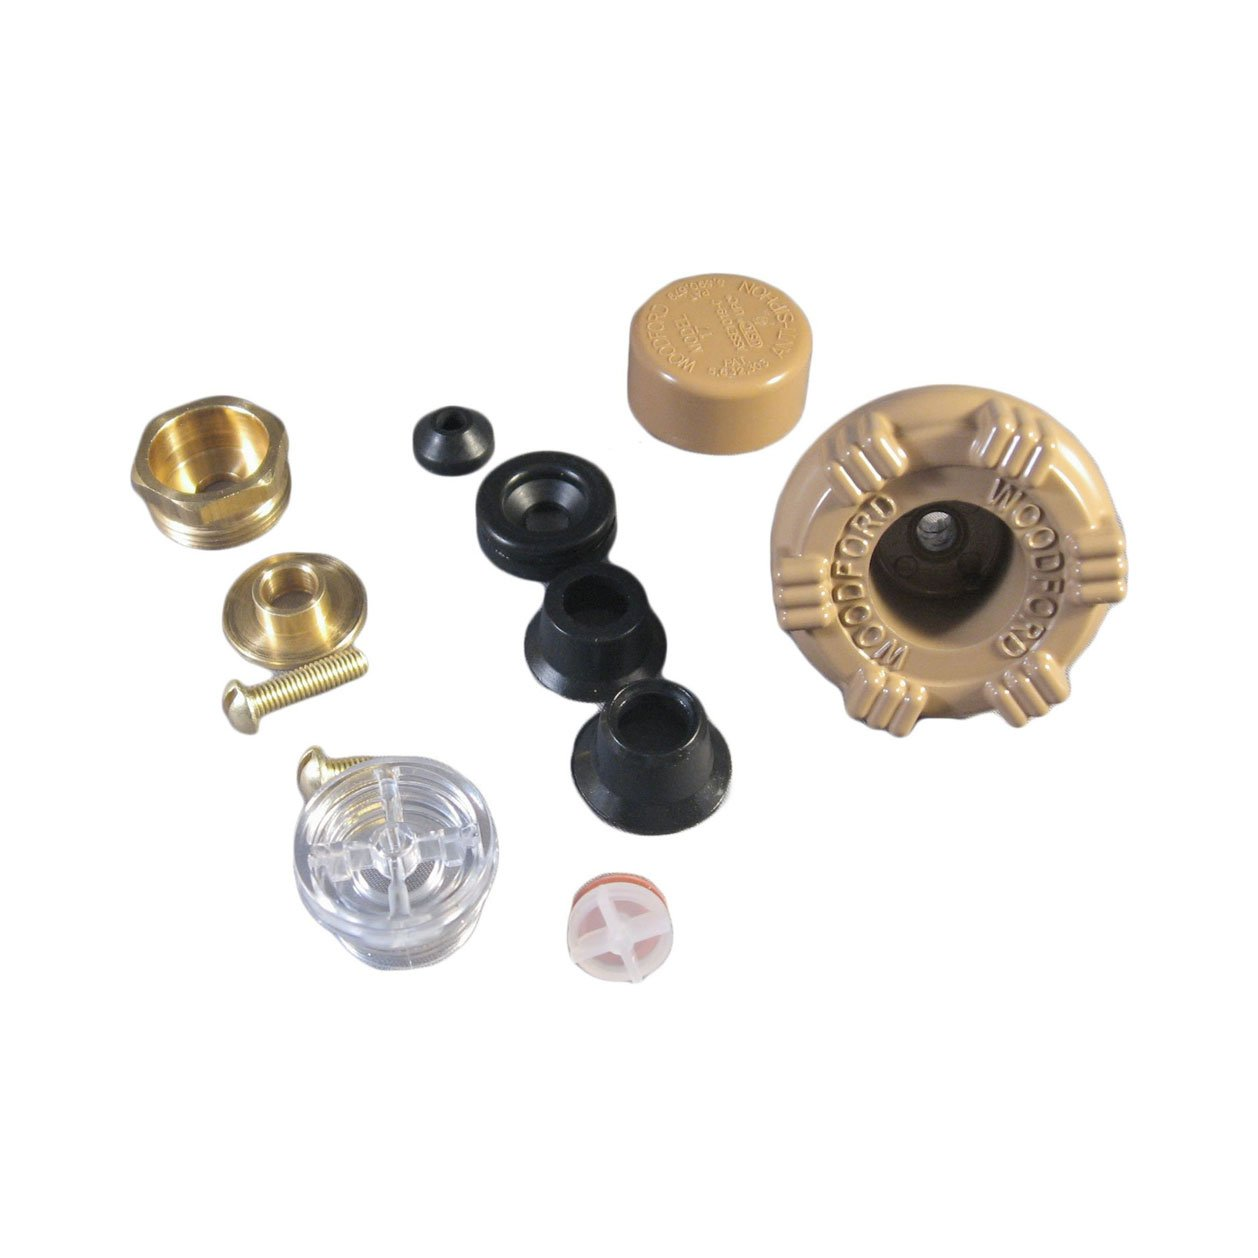 eagle mountain products rk 17mh woodford model 17 repair kit before installing operate the faucet to verify that the vacuum breaker assembly by